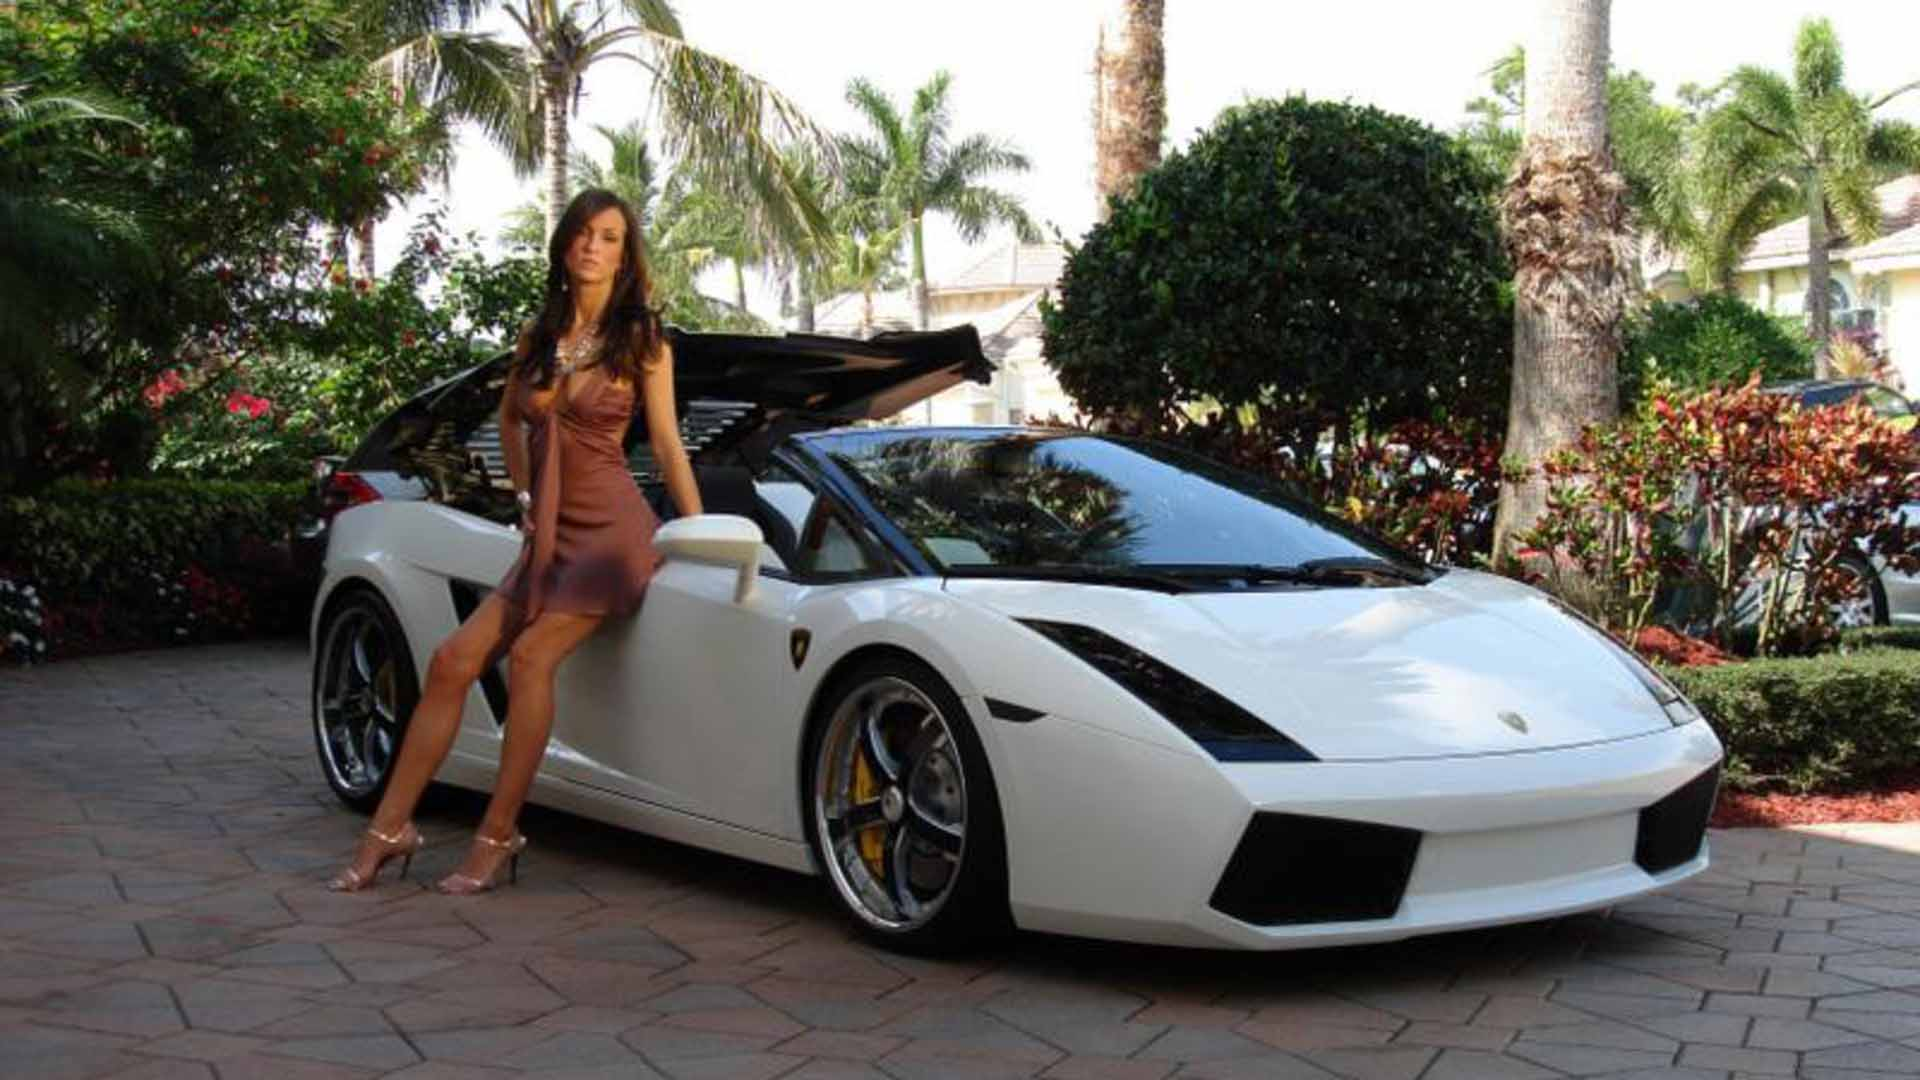 Girl With Car Wallpaper 18   SA Wallpapers 1920x1080